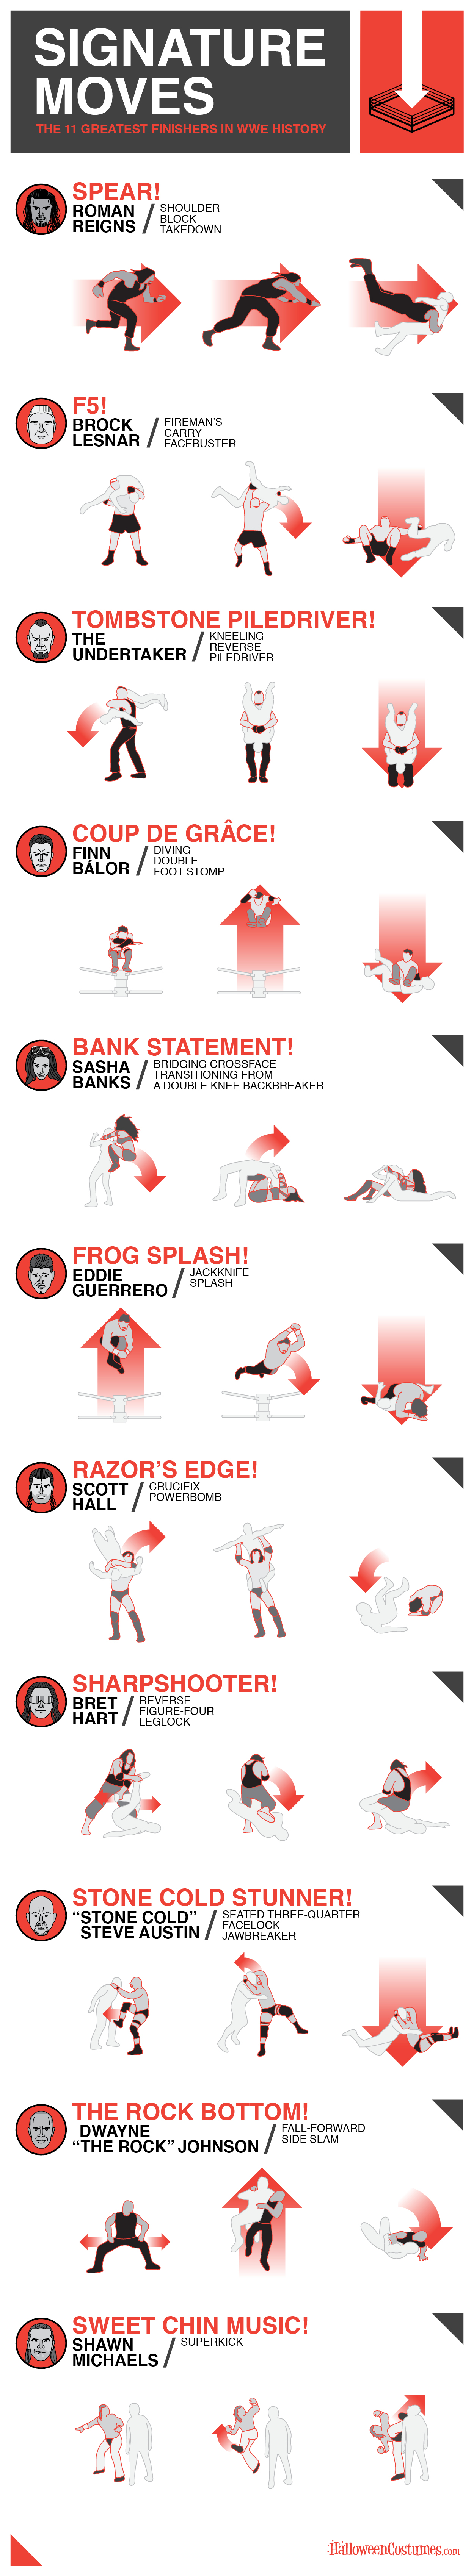 WWE Finishers Infographic